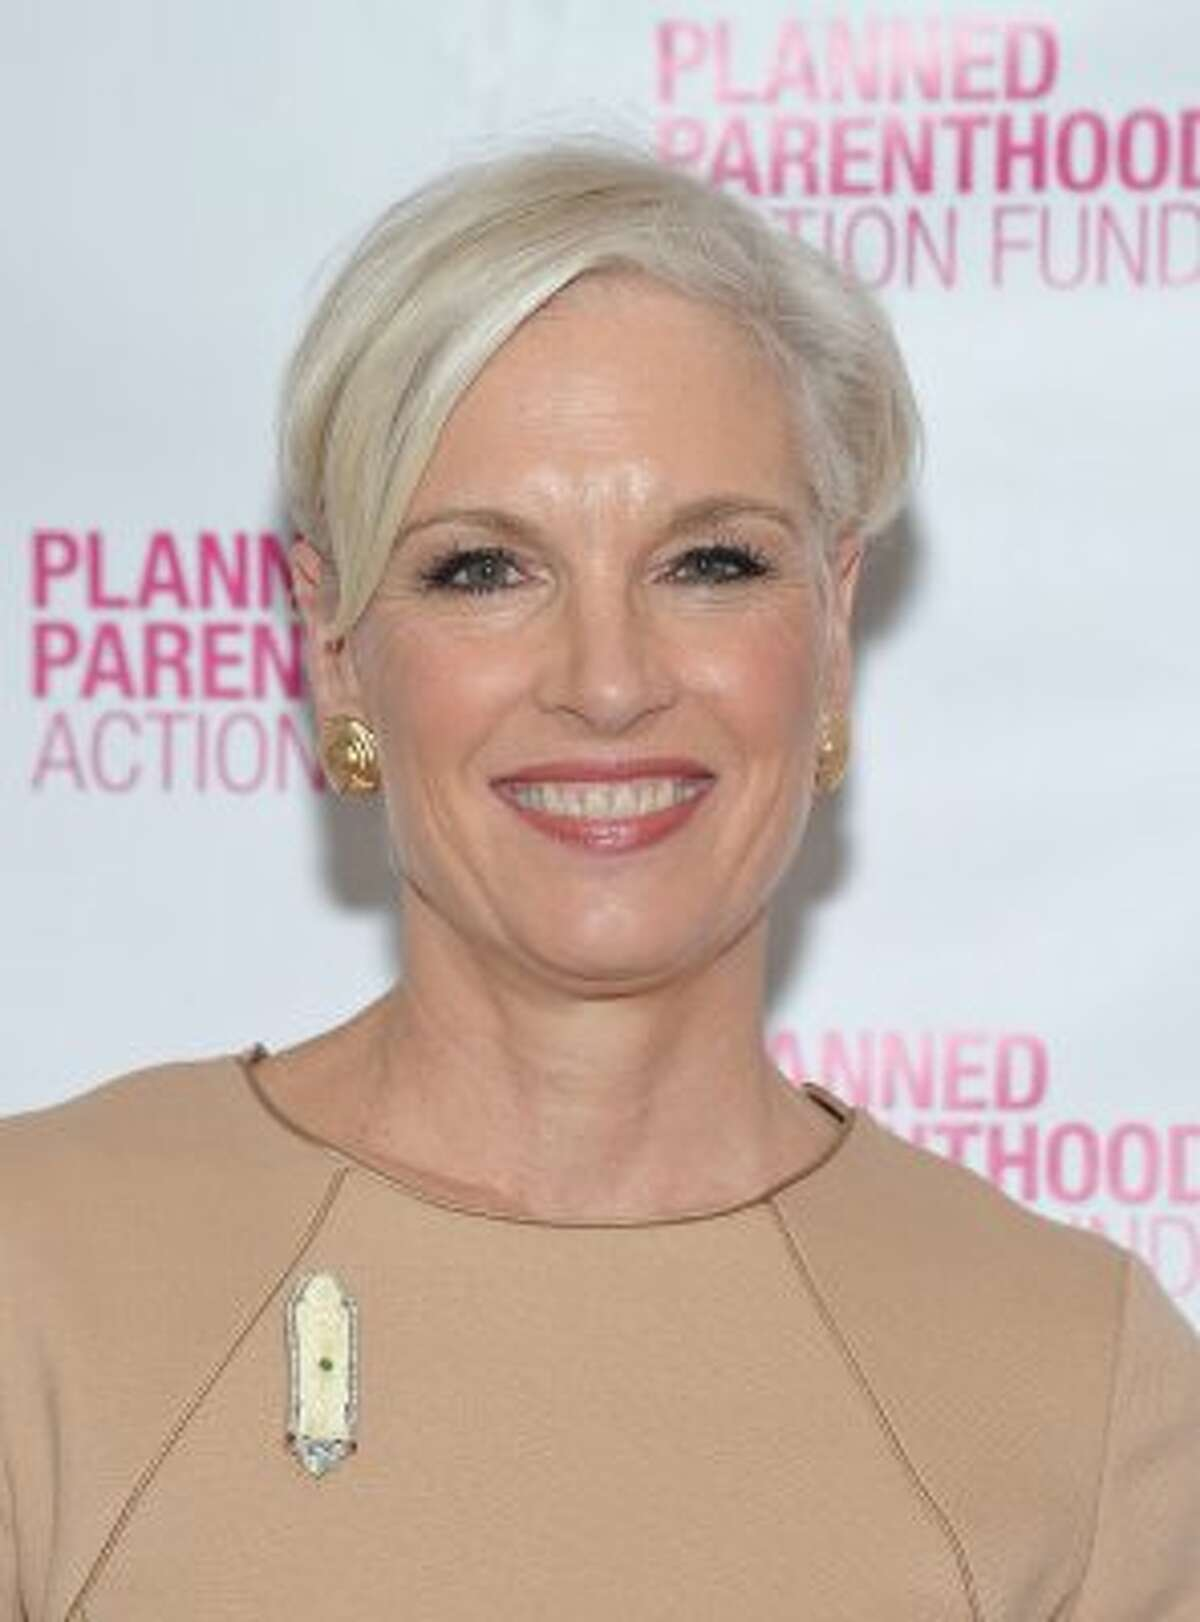 Cecile Richards on women taking power: